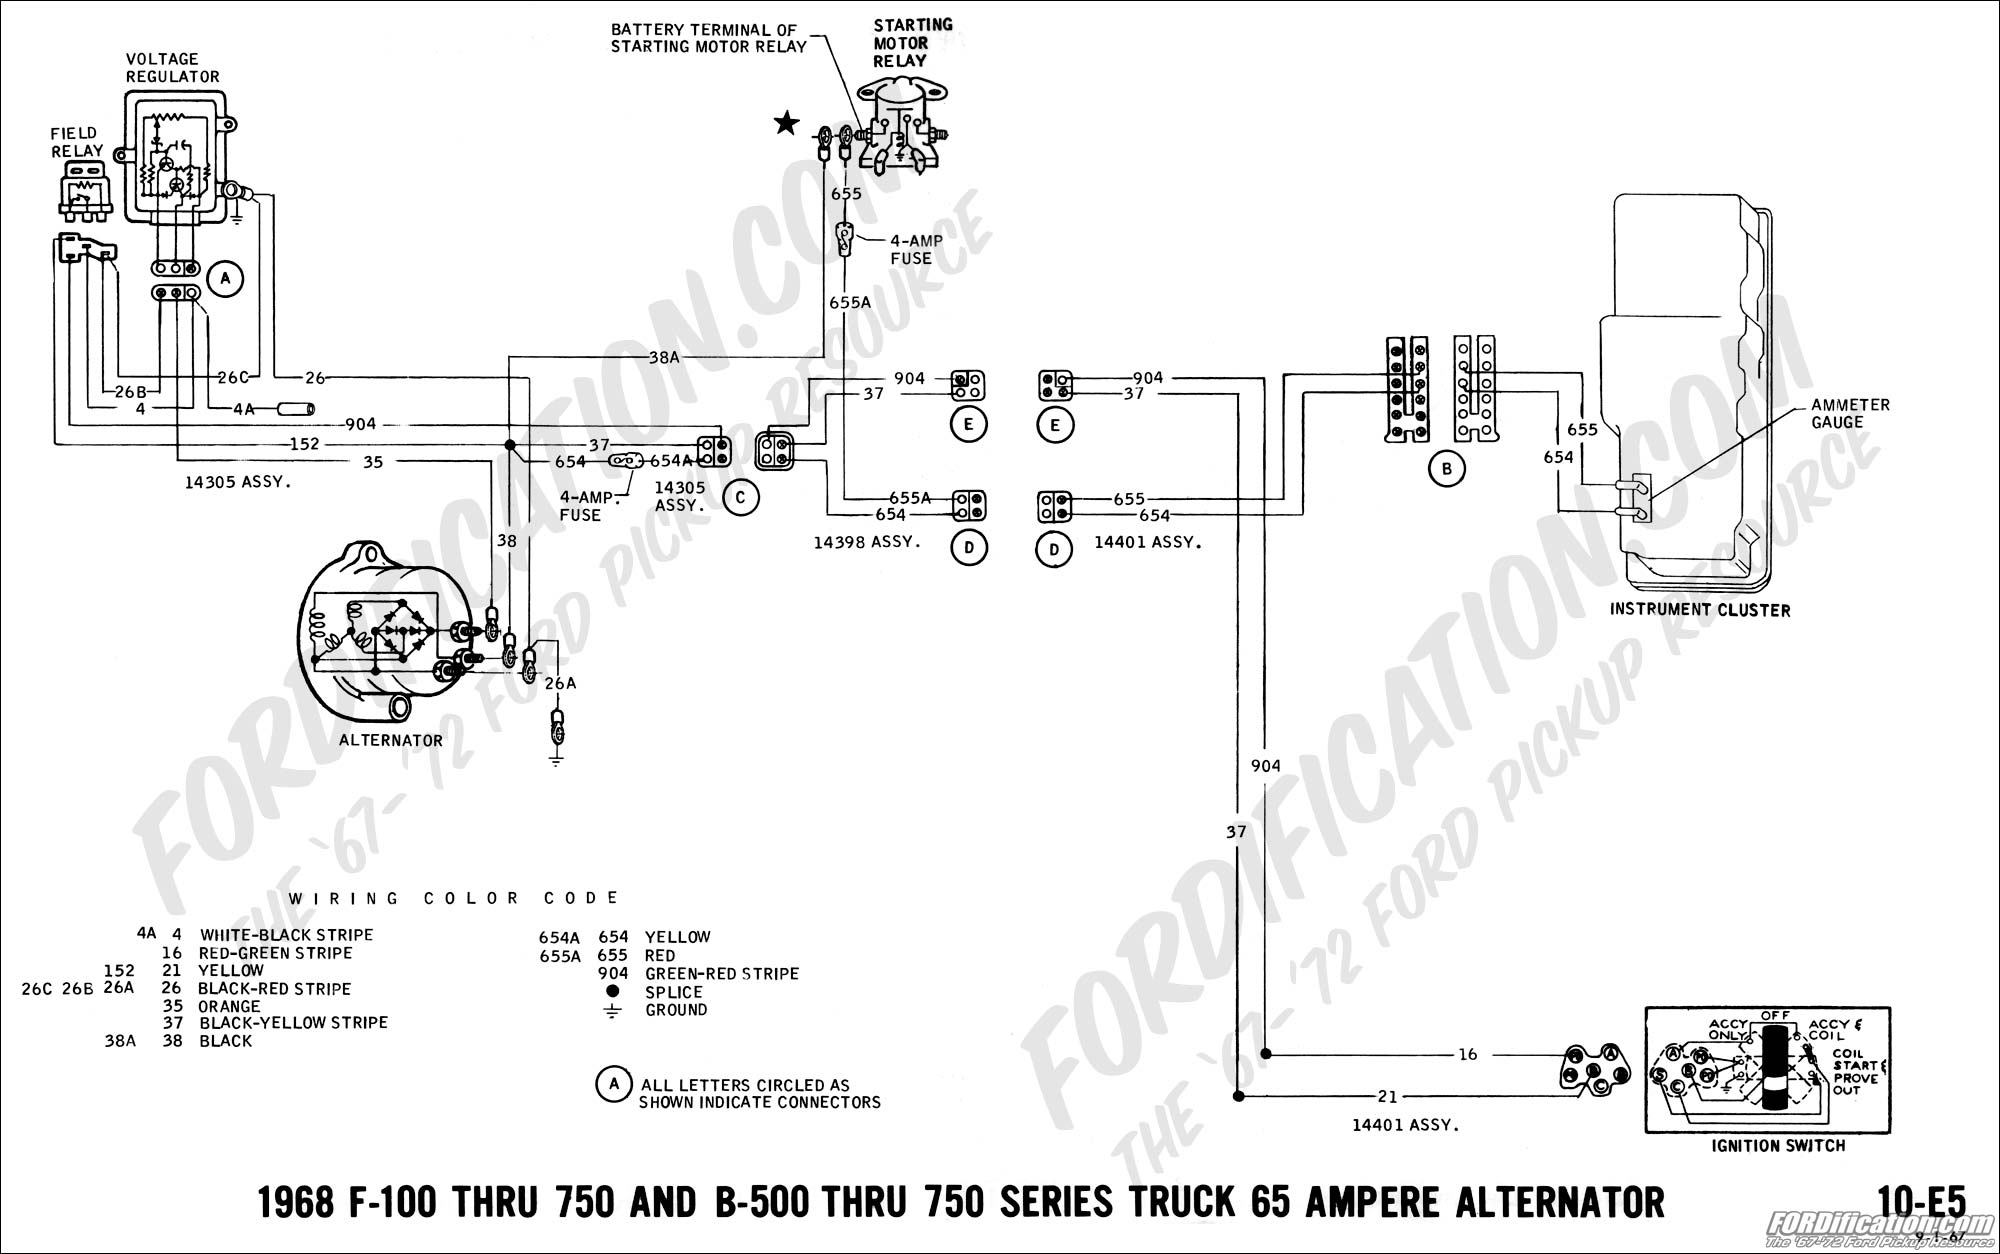 Outstanding Ranchero Wiring Diagram On 1964 Ford Falcon Ignition Wiring Diagram Wiring Cloud Cranvenetmohammedshrineorg